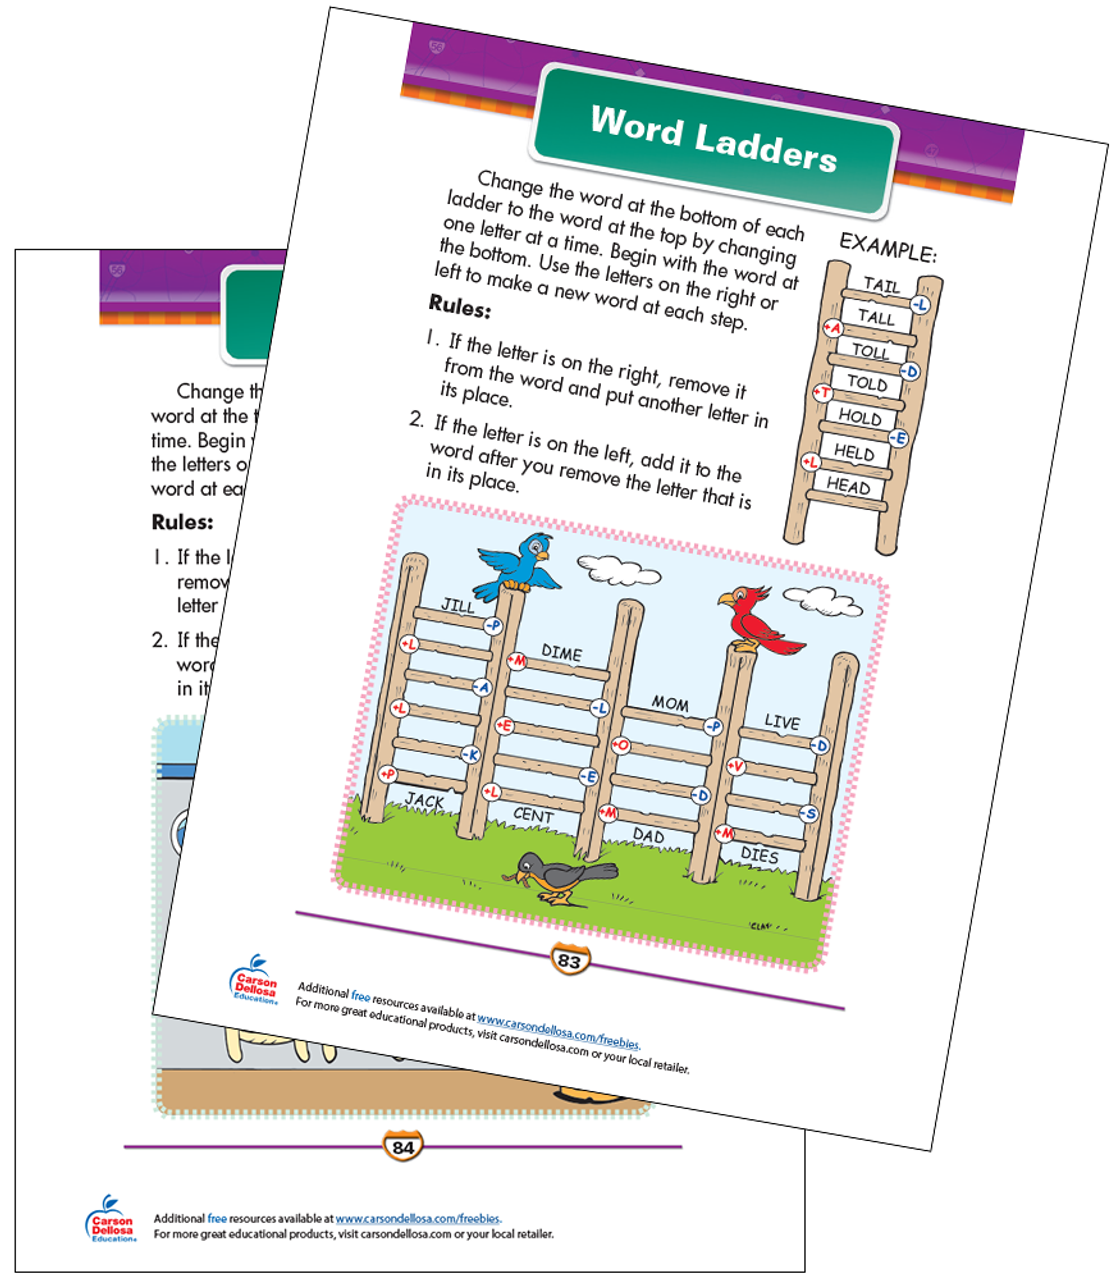 image about Word Ladders Printable referred to as Term Ladders No cost Printable Carson Dellosa